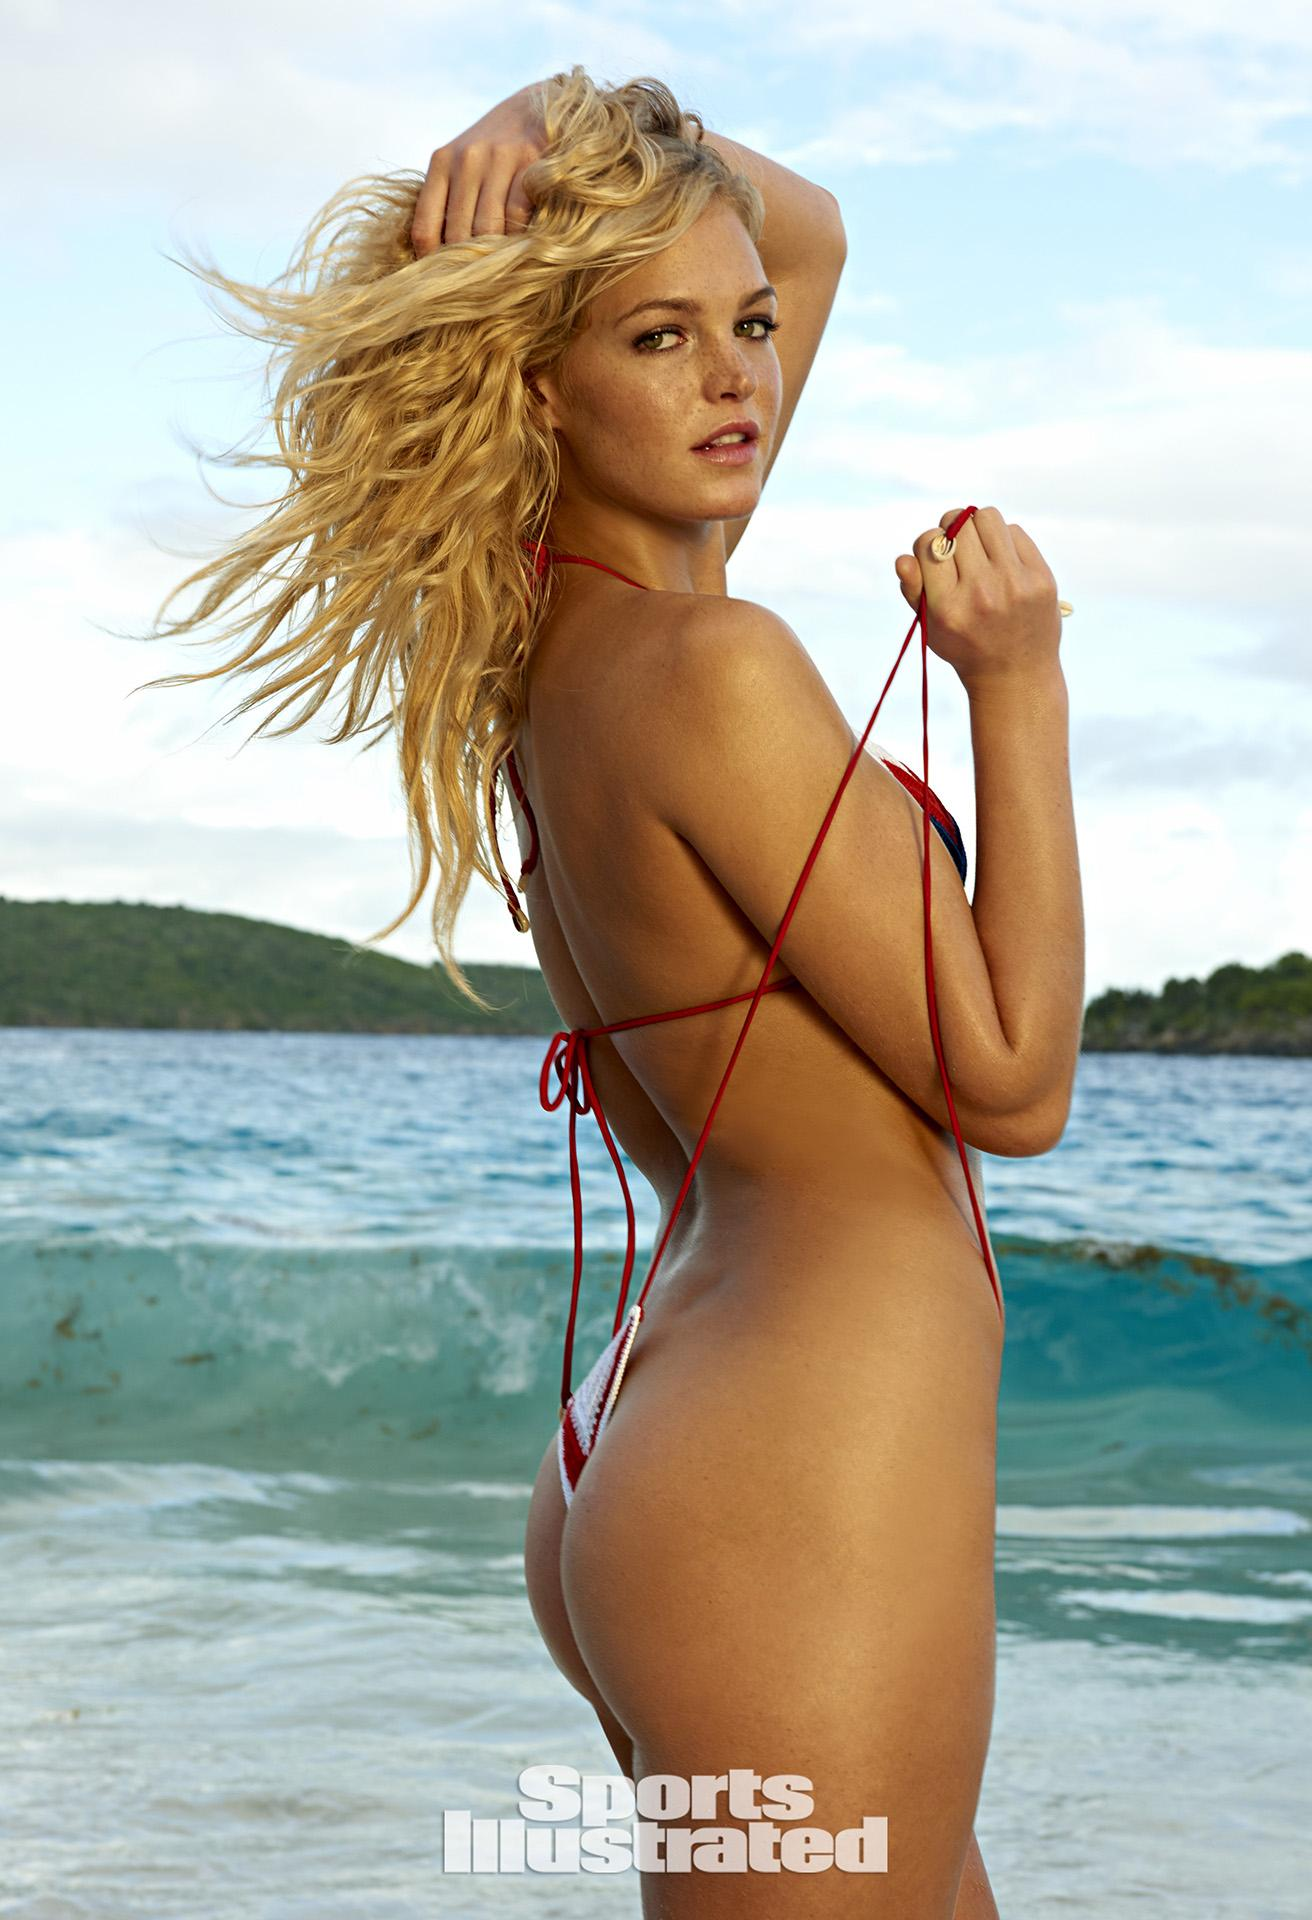 Erin heatherton genevieve morton rose bertram 6